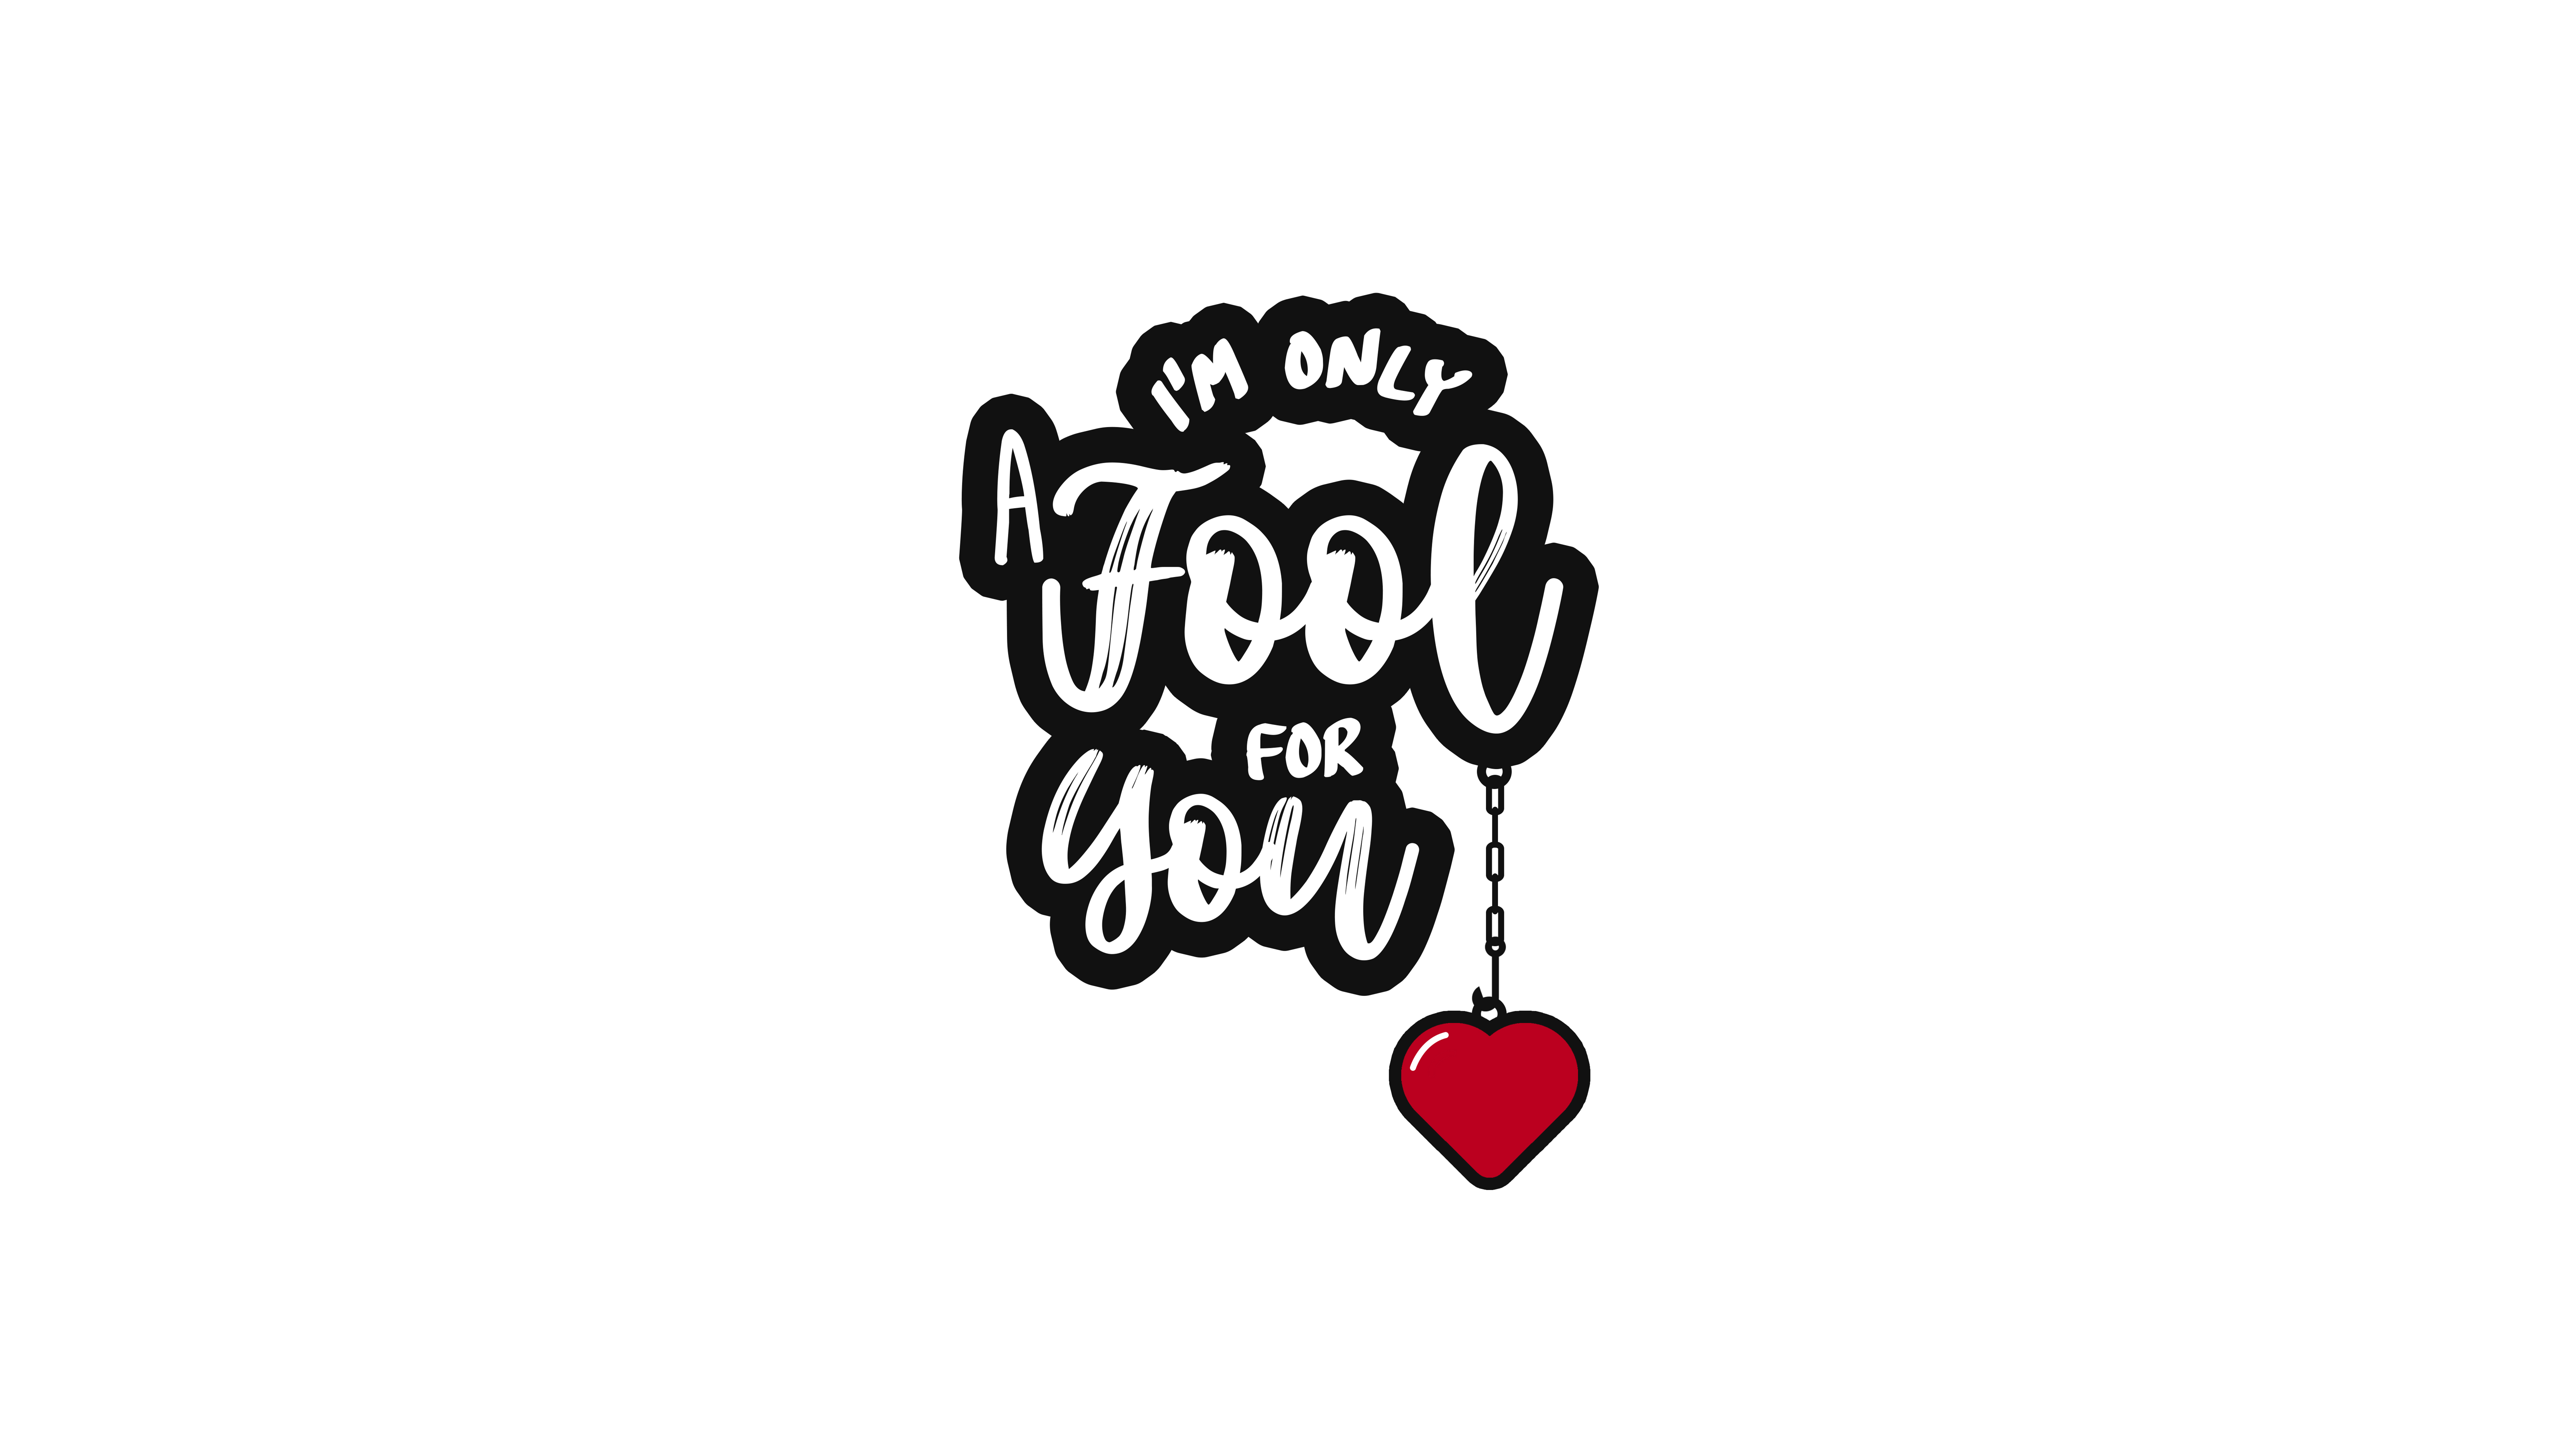 i am only a fool for you quote 4k 8k